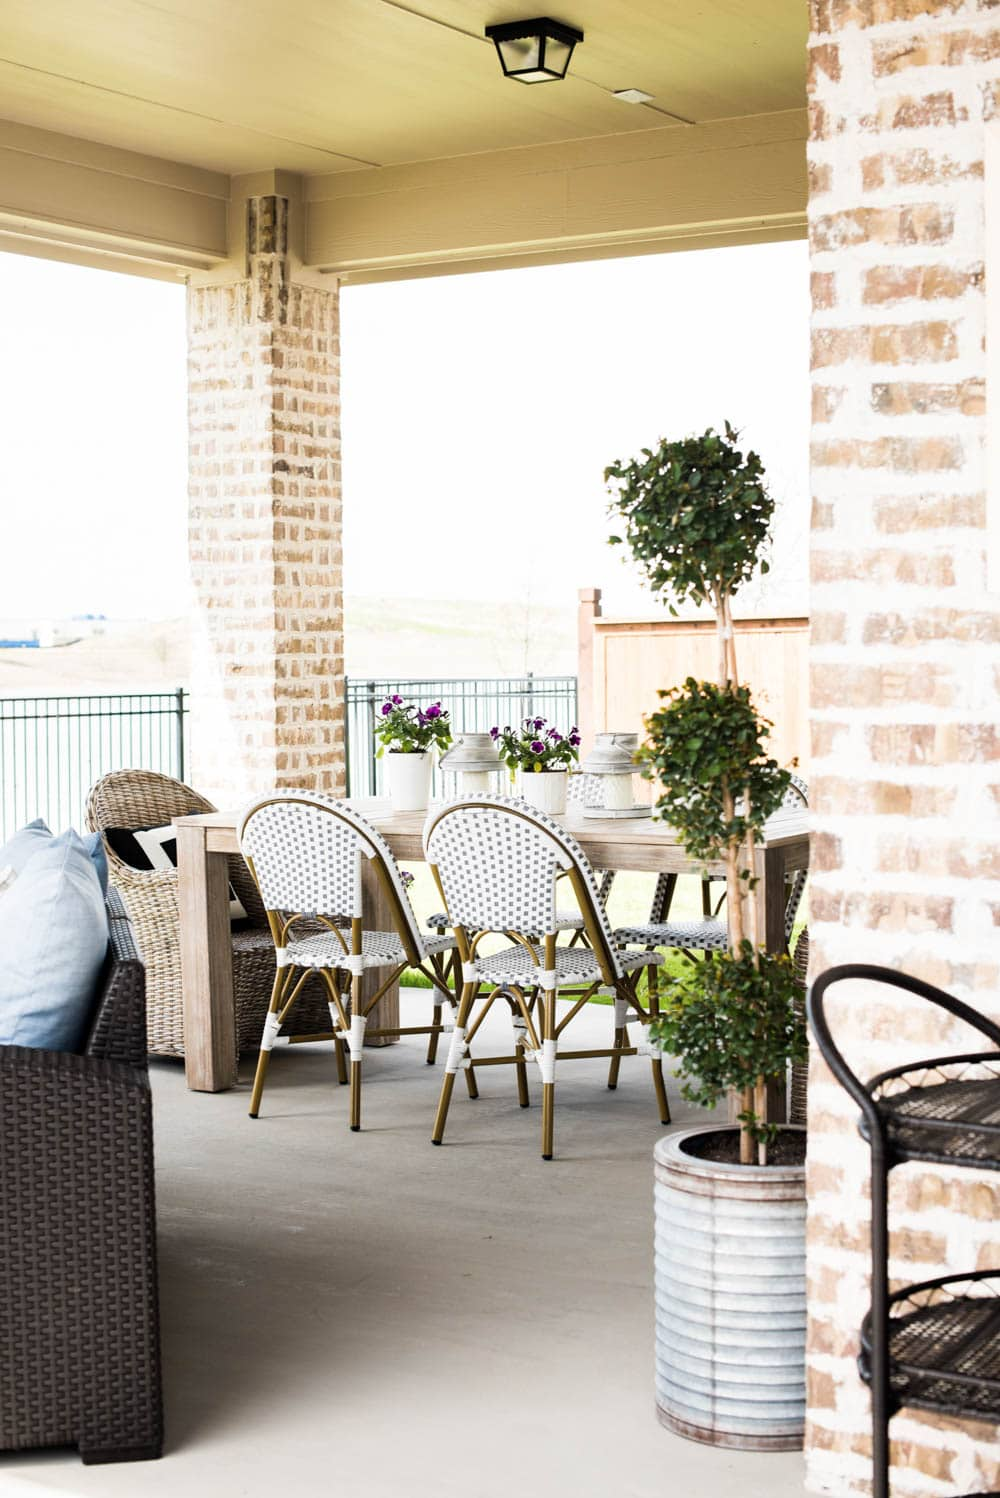 Small Backyard Patio Ideas + My Outdoor Living Space Reveal on My Backyard Living id=38080